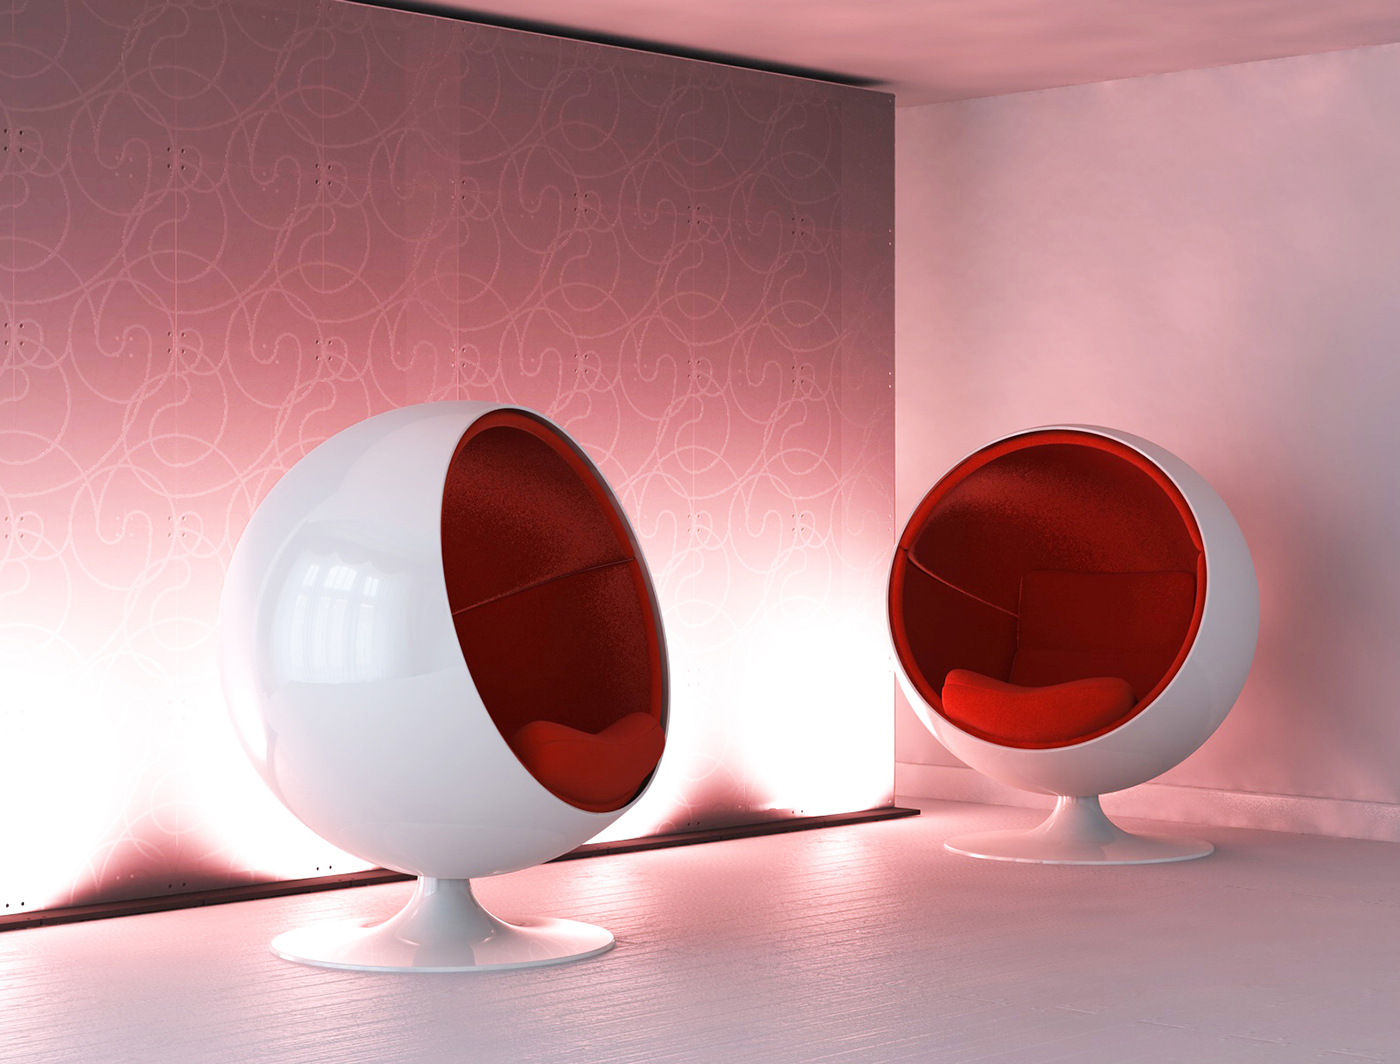 Swirl SuperWall creates a unique lounge space